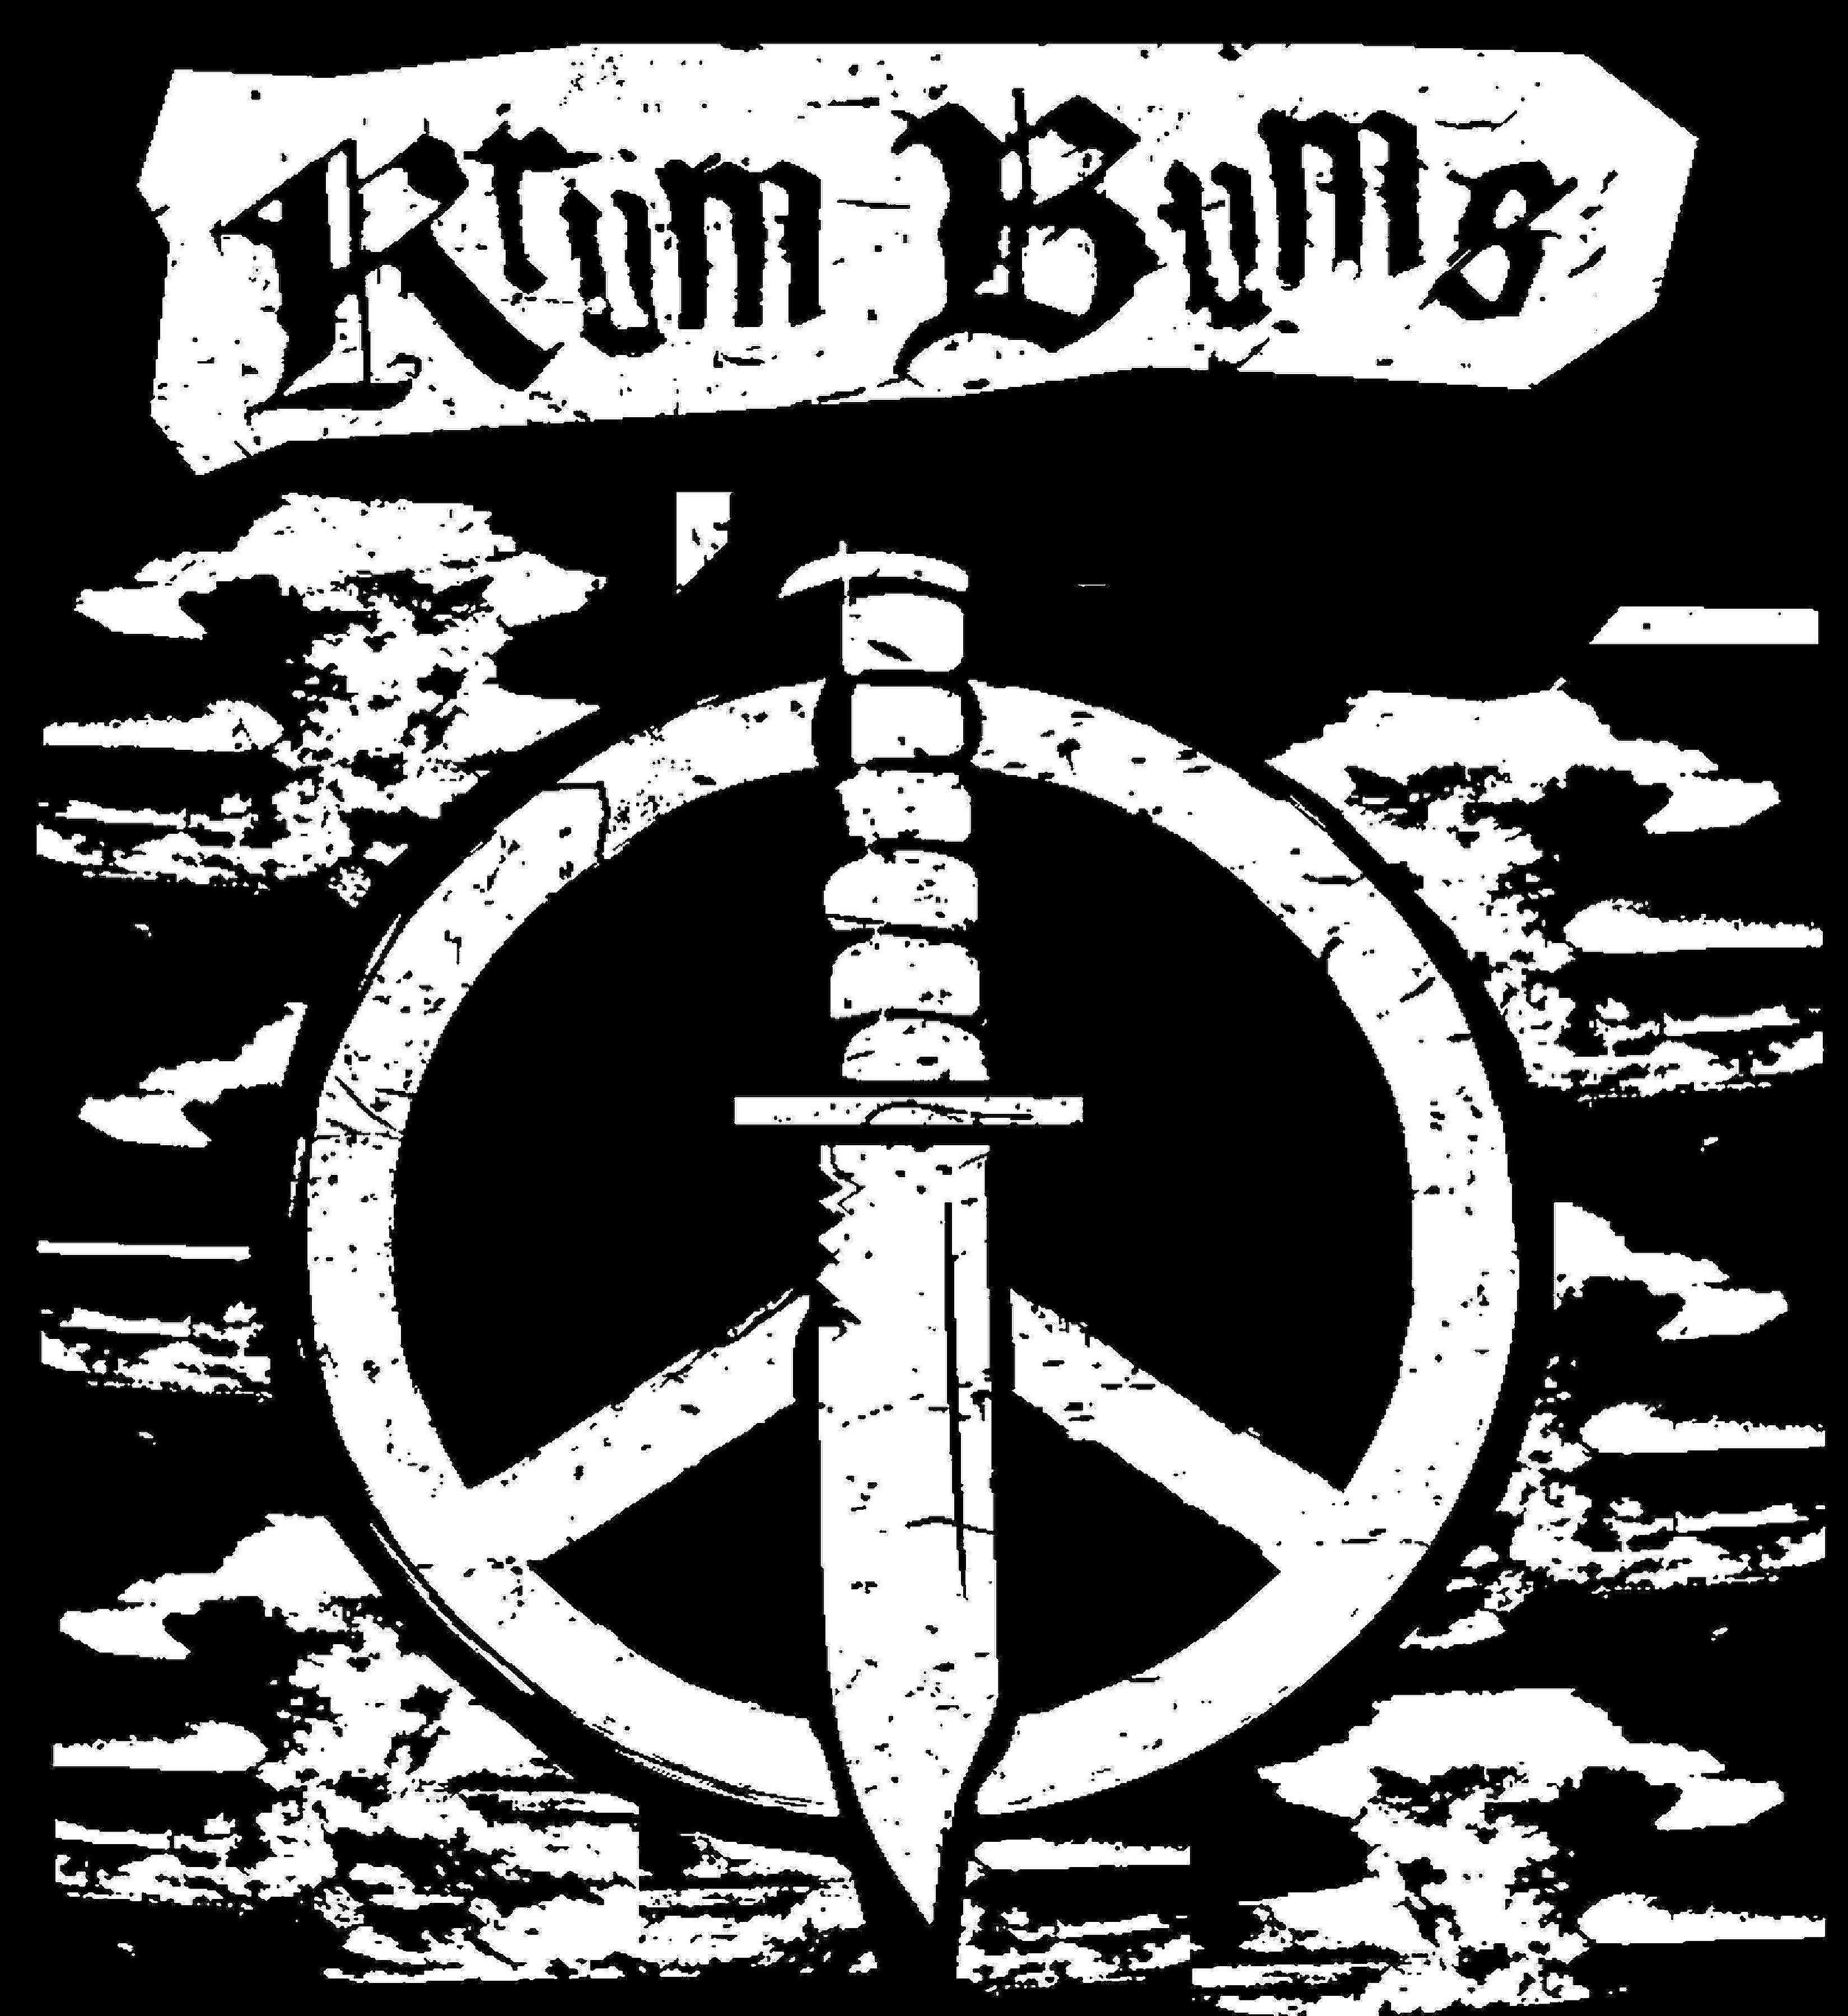 ... Bums full back patch/bum flap 12x14   Online Store Powered by Storenvy: jailhouserecords.storenvy.com/products/9603403-krum-bums-full-back...